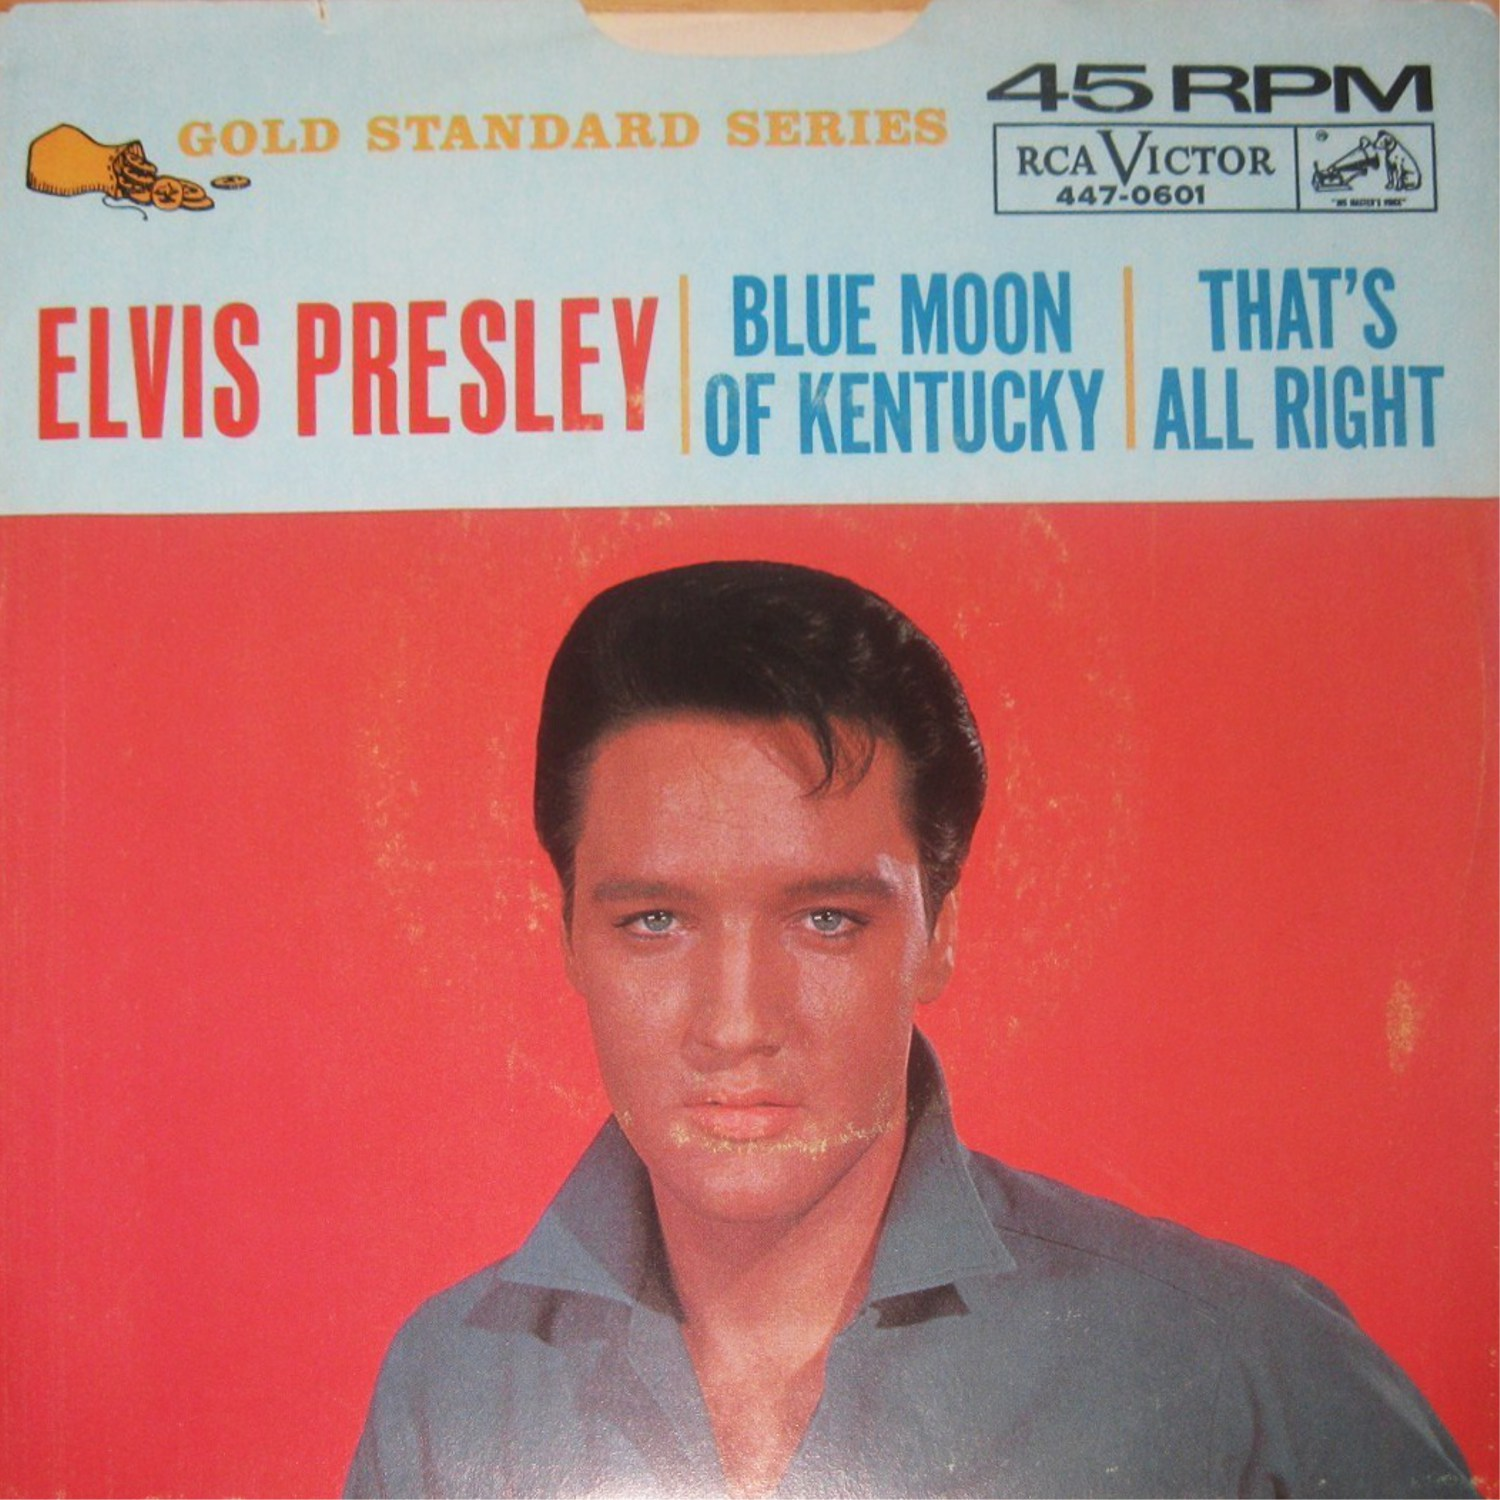 That's All Right / Blue Moon Of Kentucky 447-0601a3pkxh